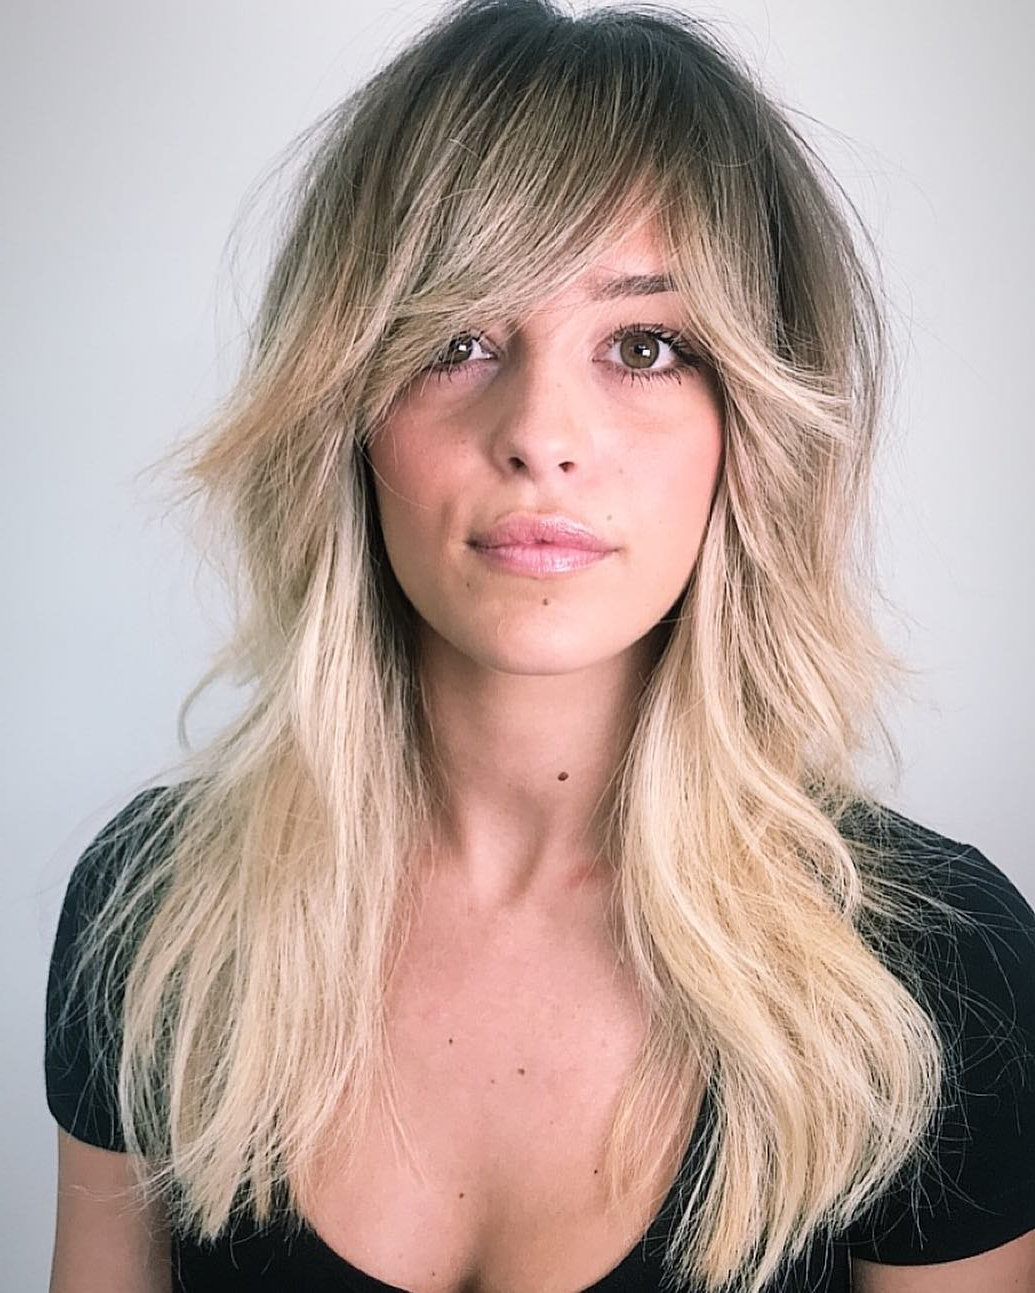 The Most Instagrammable Hairstyles With Bangs In 2019 With Latest Versatile Layered Shag Haircuts (View 18 of 20)